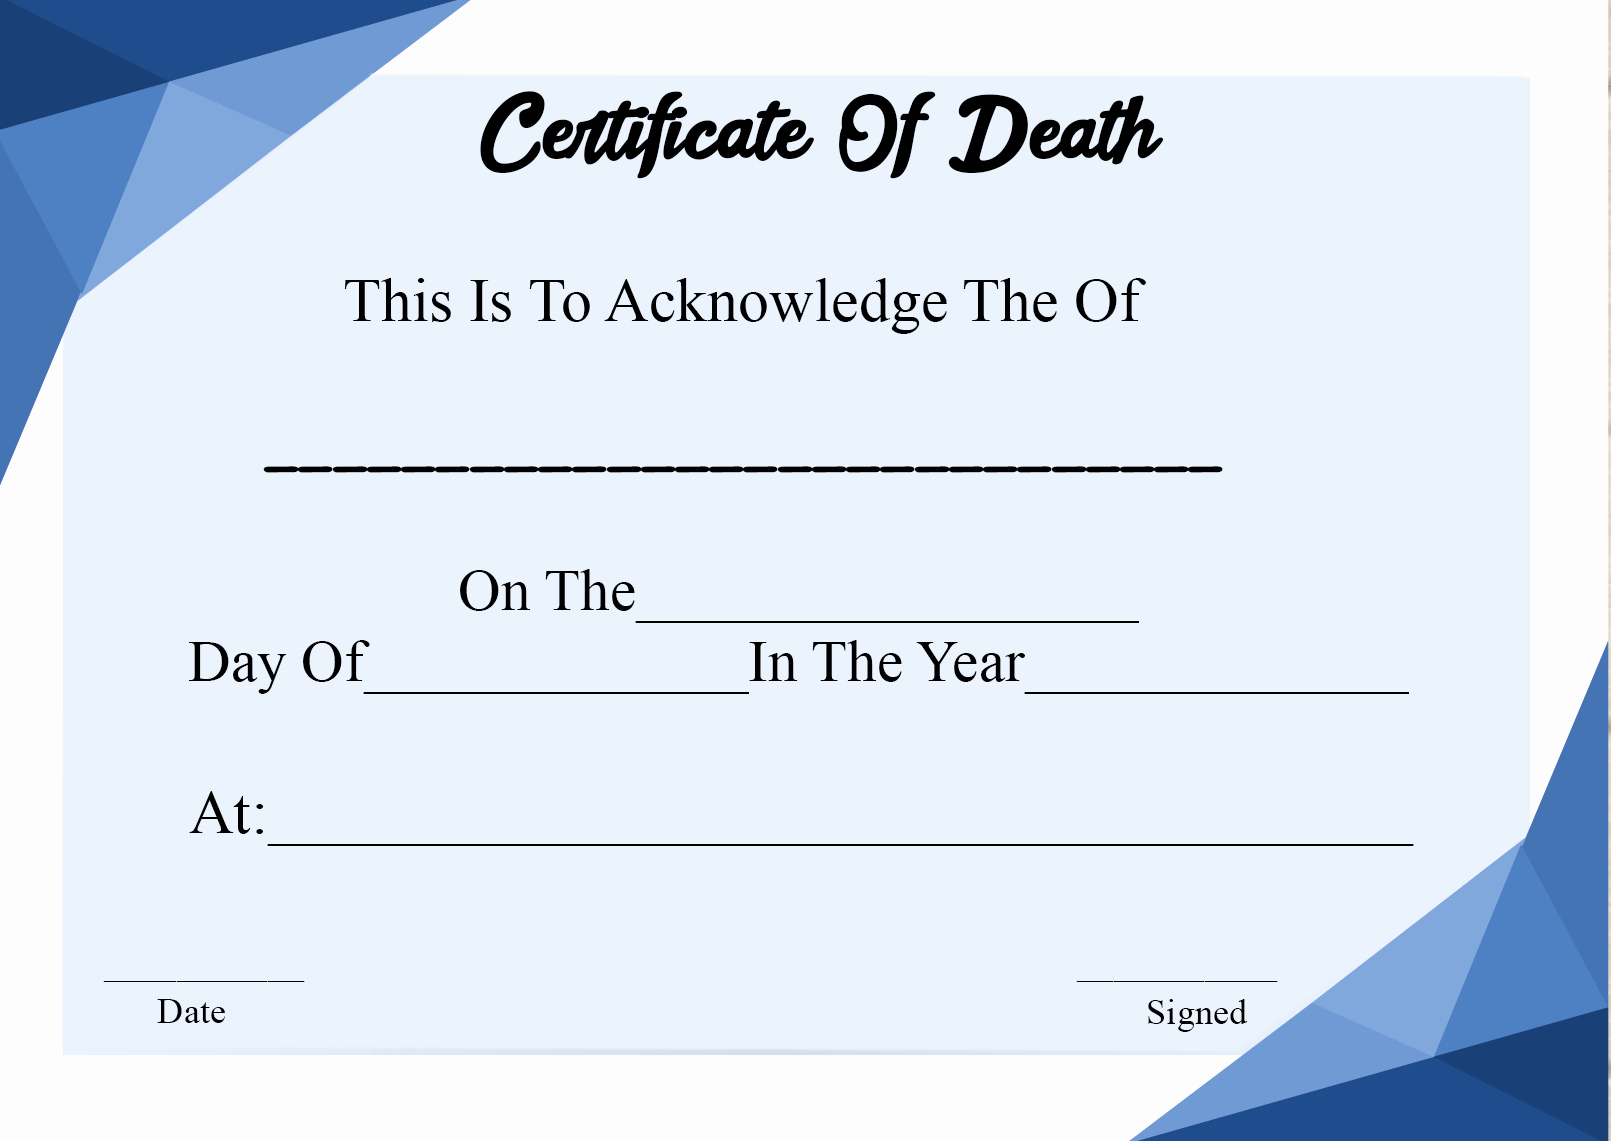 Blank Death Certificate Template Inspirational 5 Printable Certificate Death Templates with Samples